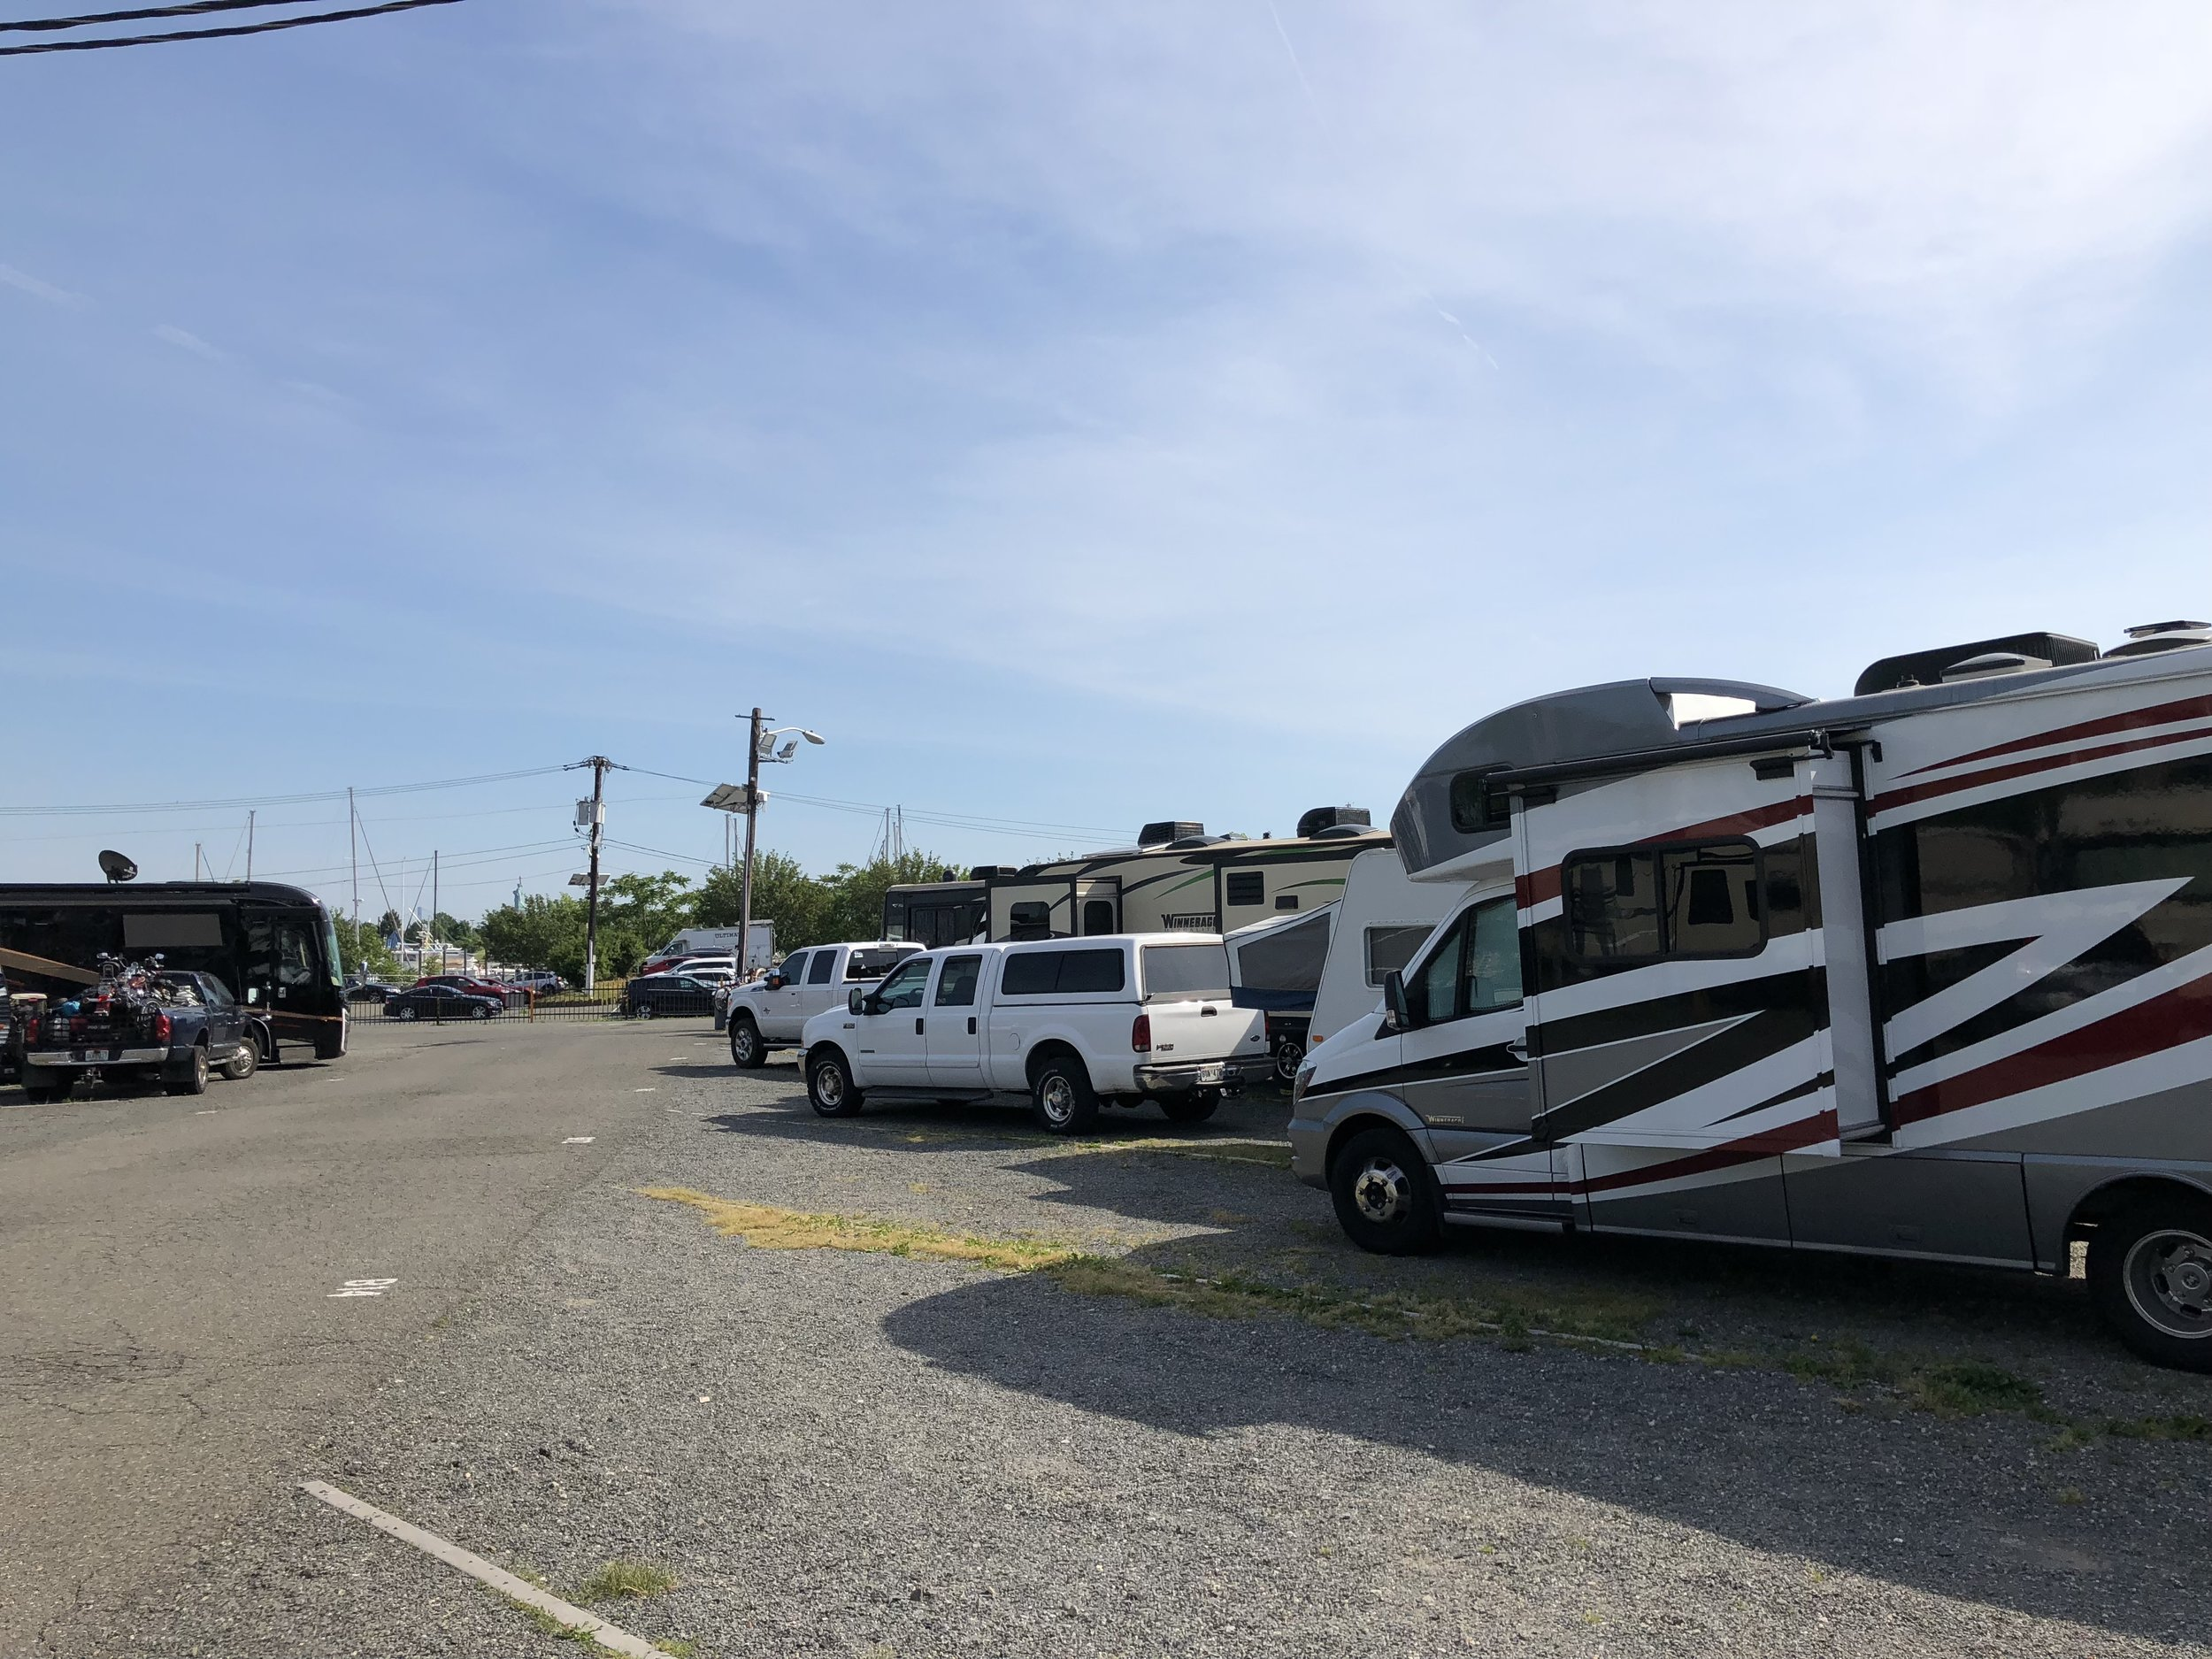 Our RV park in Jersey